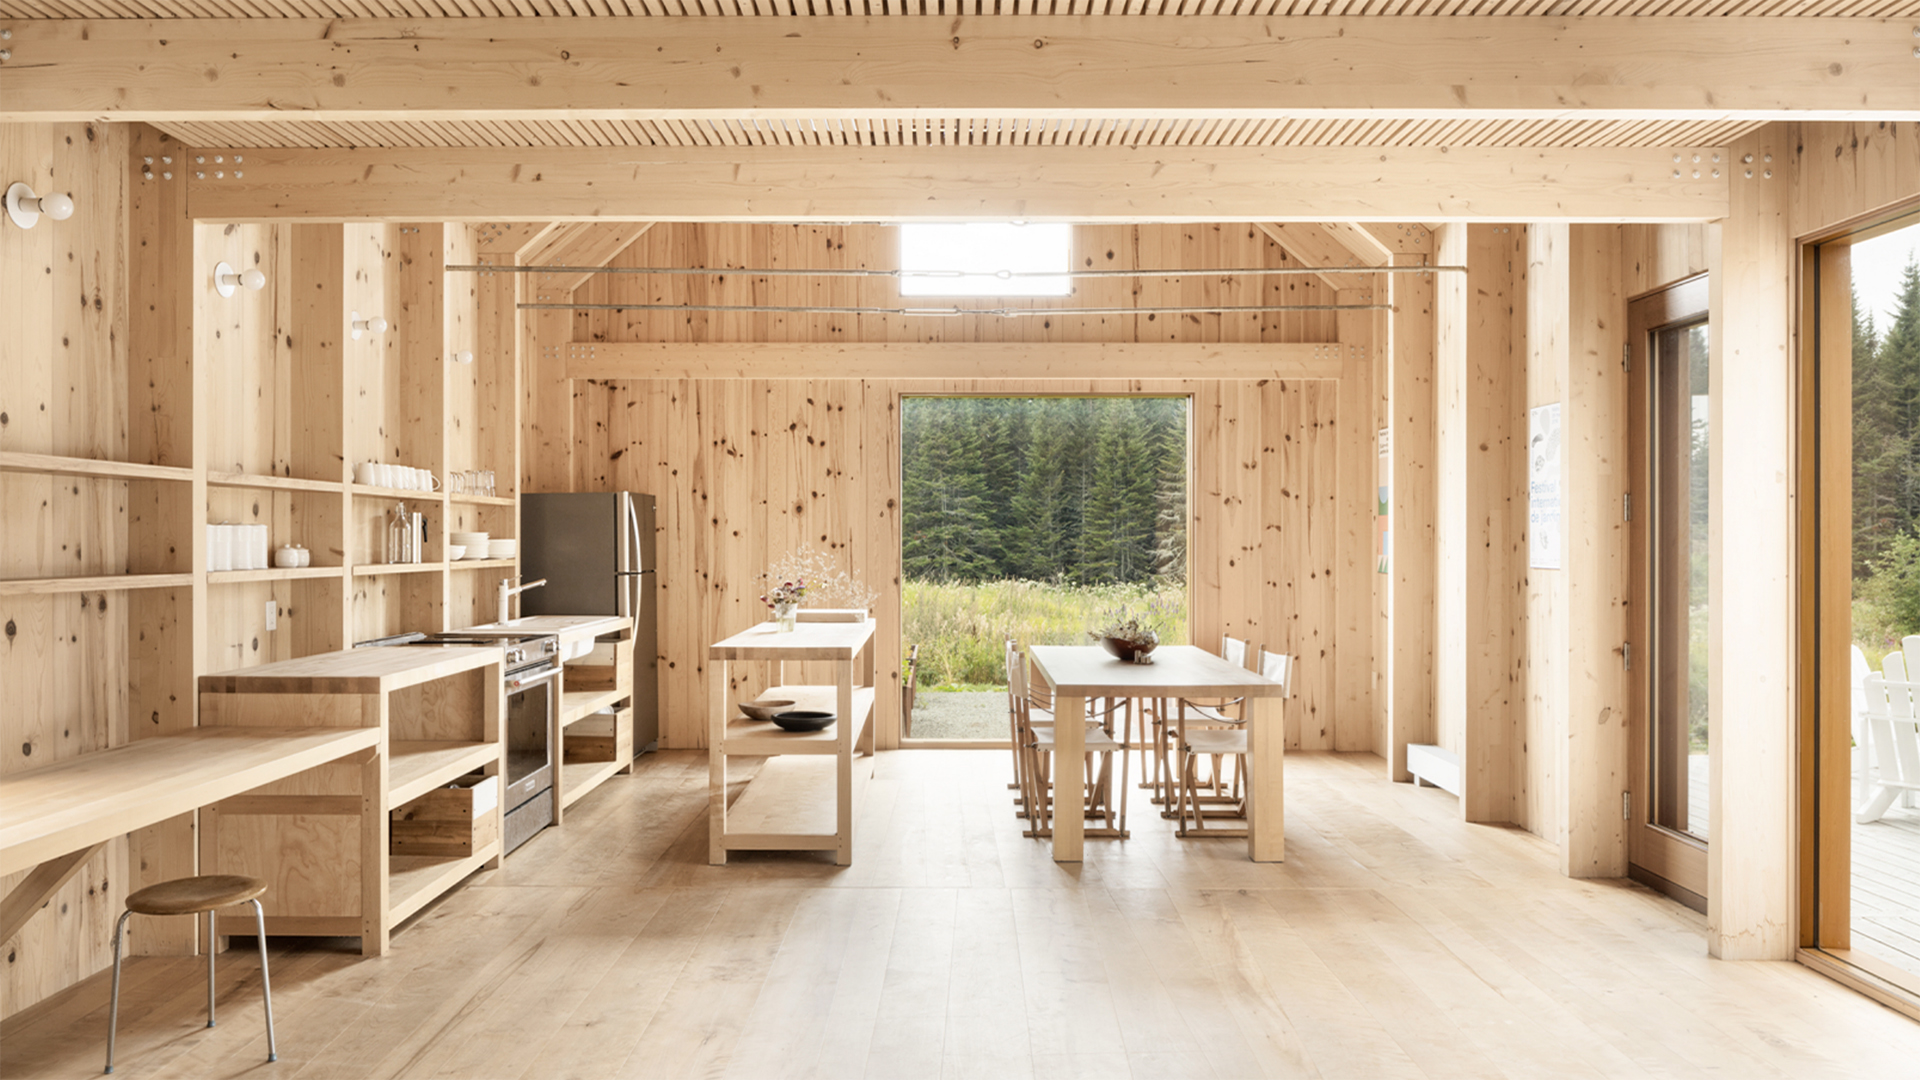 Design: Atelier Pierre Thibault / Winner of the Residential 1,600 to 3,200 sq.ft space Award.